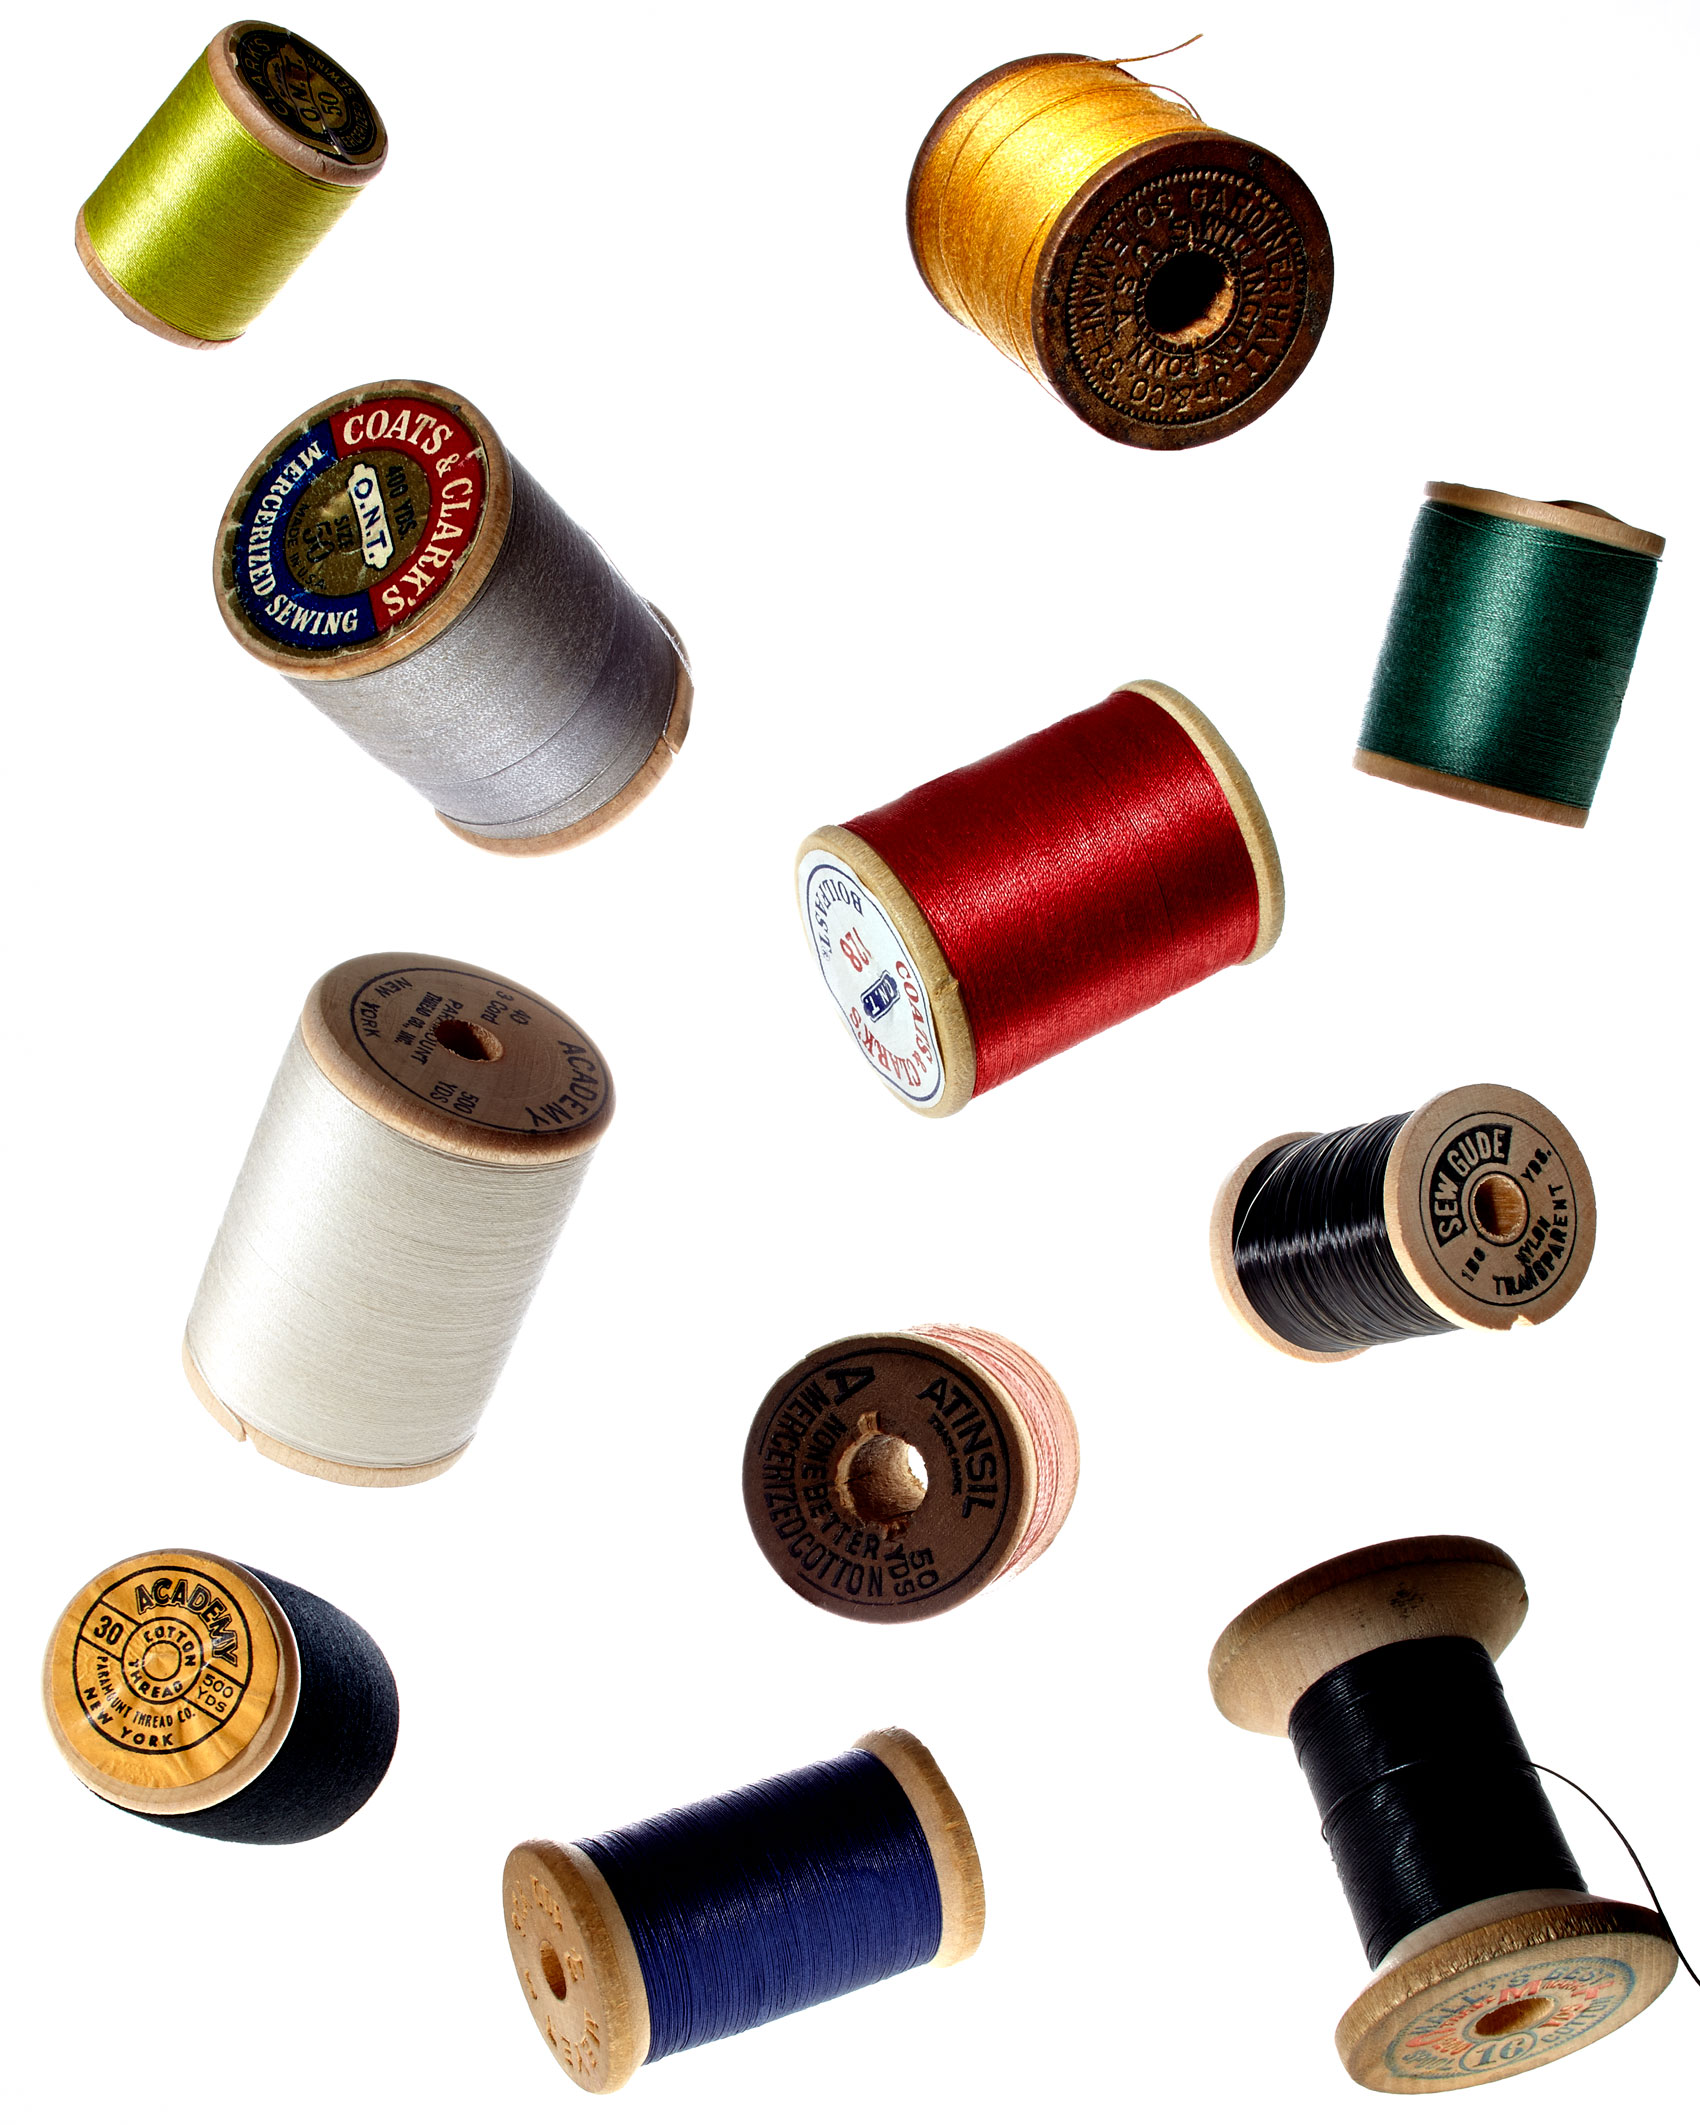 Sewing Spools